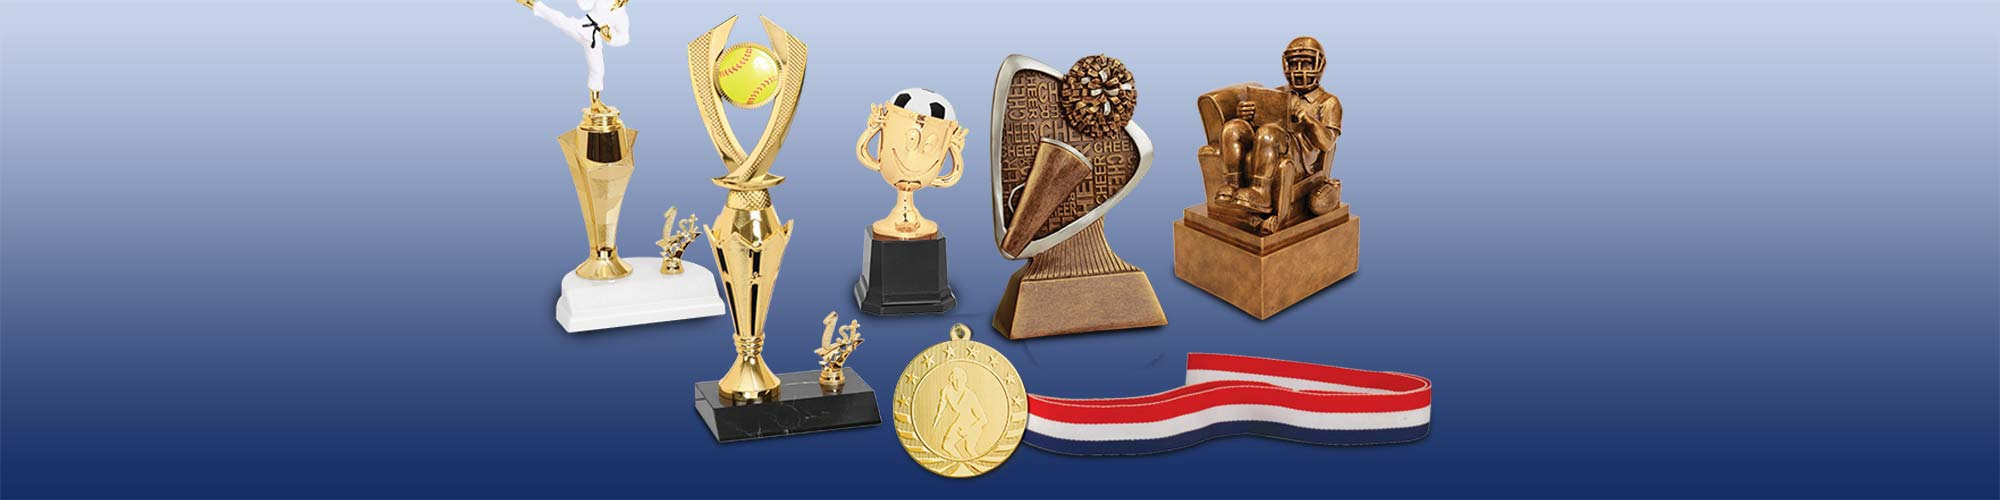 Sports Awards Trophies, Medals, Cups and Ribbons